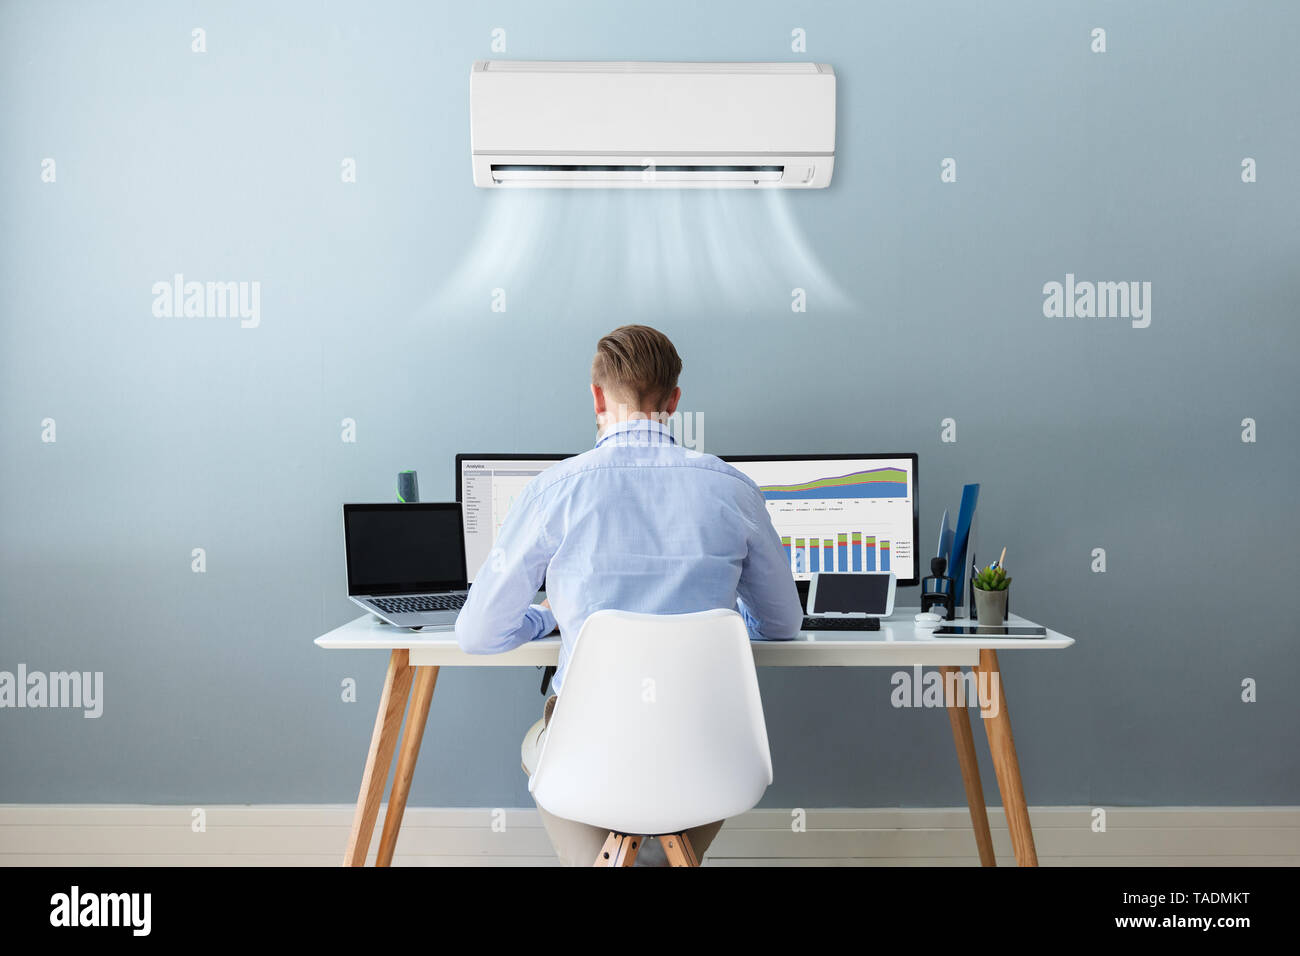 Young Businessman Working In Office With Air Conditioning - Stock Image